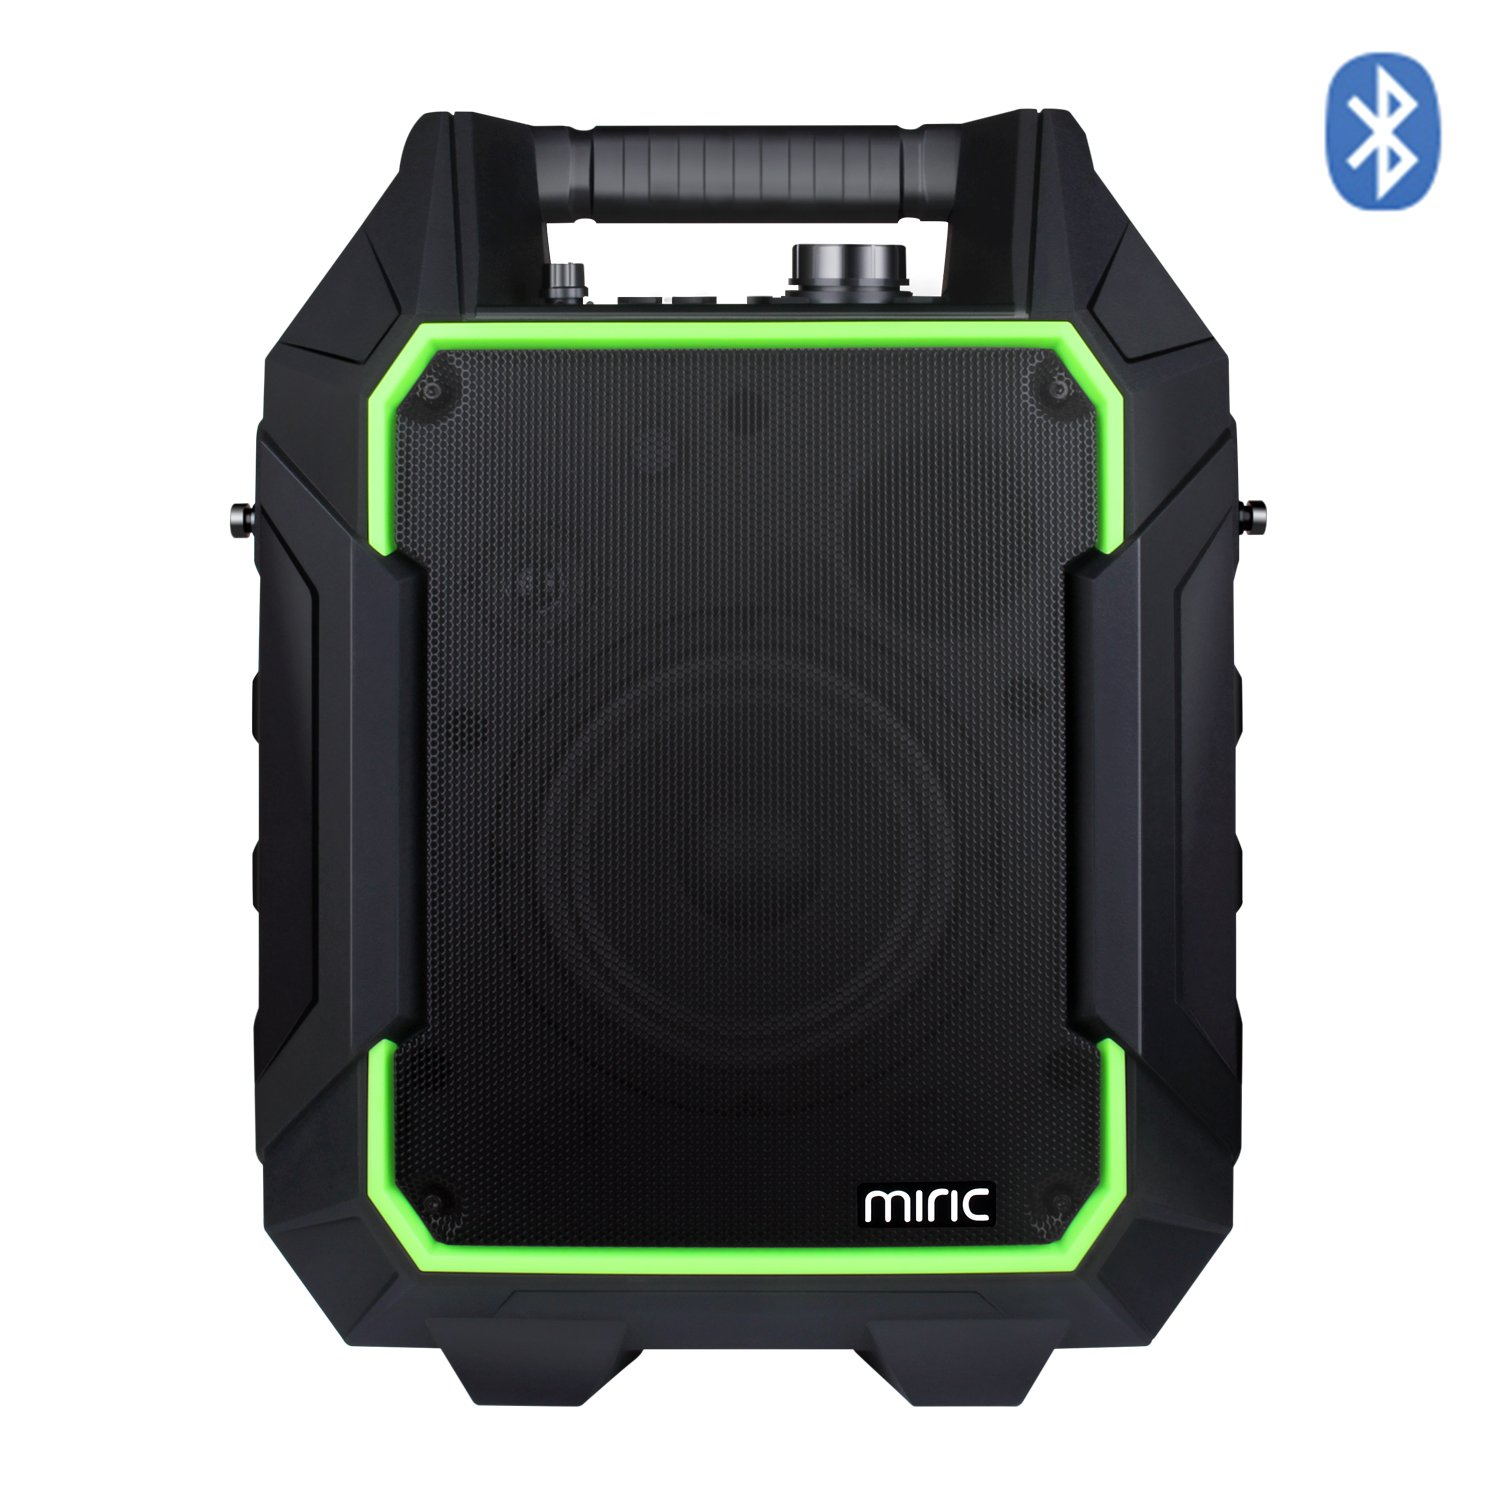 Miric Portable PA Speaker Bluetooth 60W, Outdoor Speaker 60 hours Playing Time with NFC / USB Charge Port / 3.5mm Interface / SD / FM Radio for Mic, Guitar, and Party, Gatherings, Dance, Rechargeable.